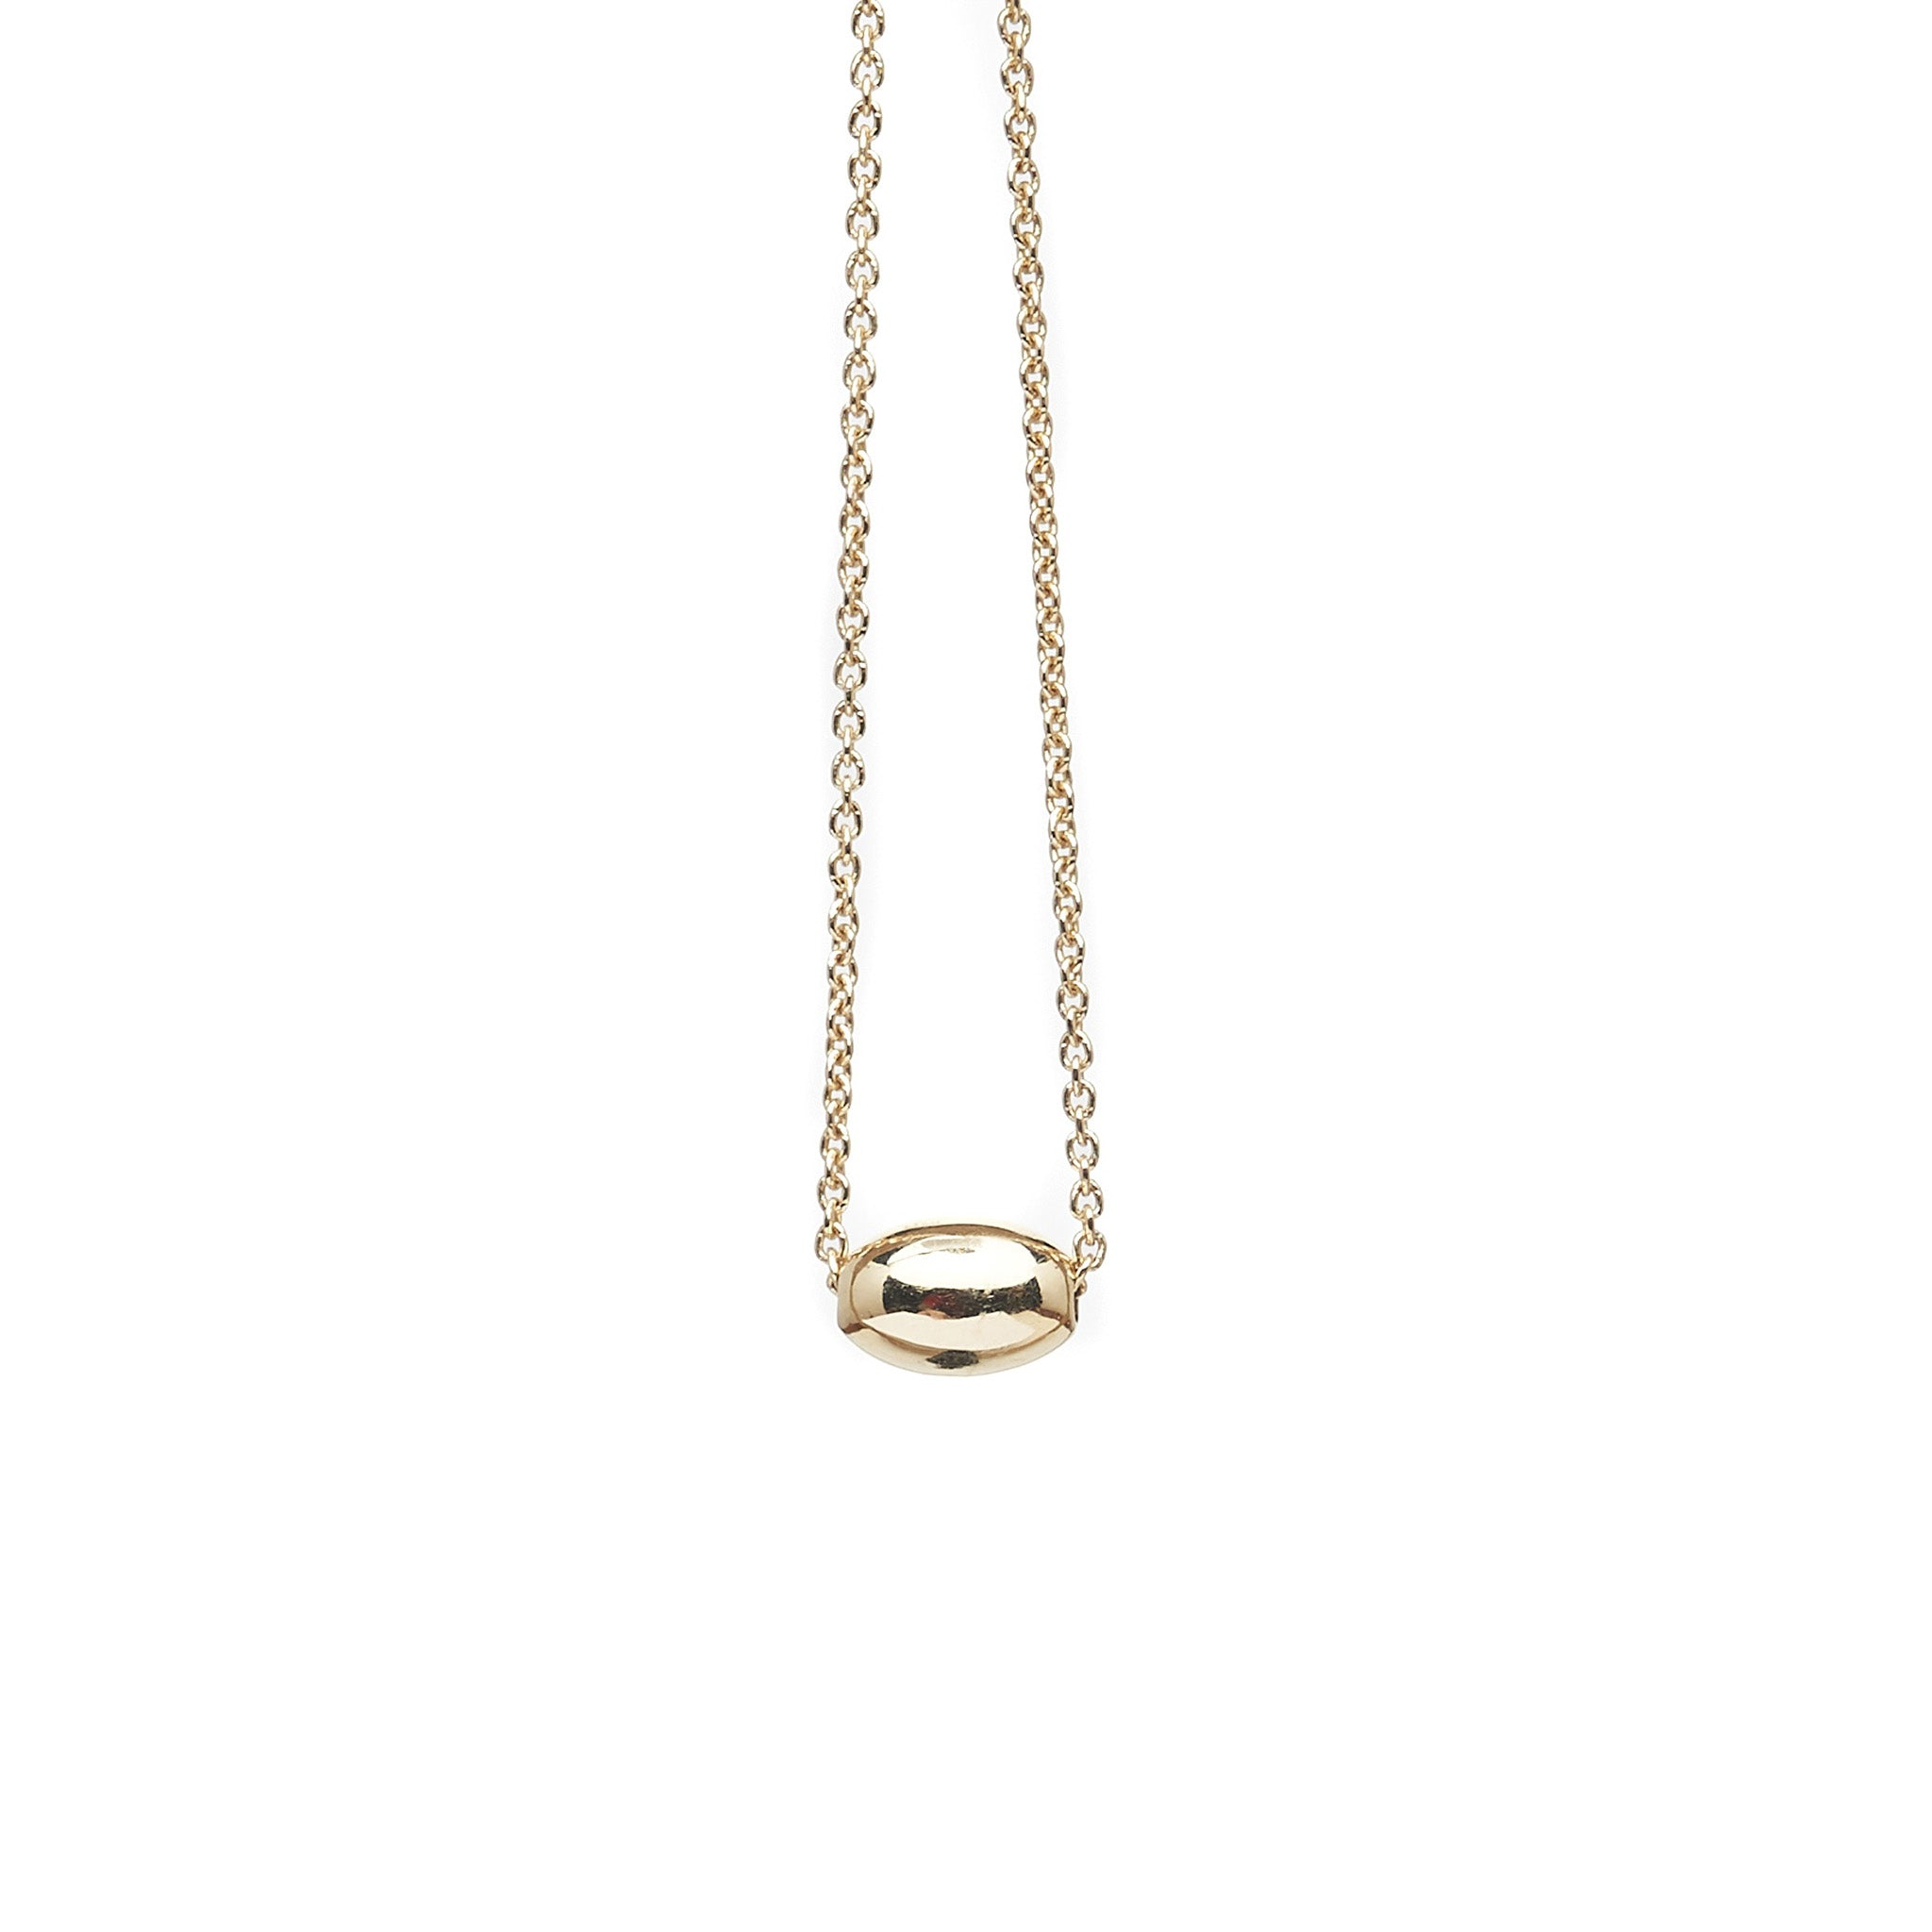 The Straits Finery minimalist necklace in 14k solid gold with fine chain and gold bead